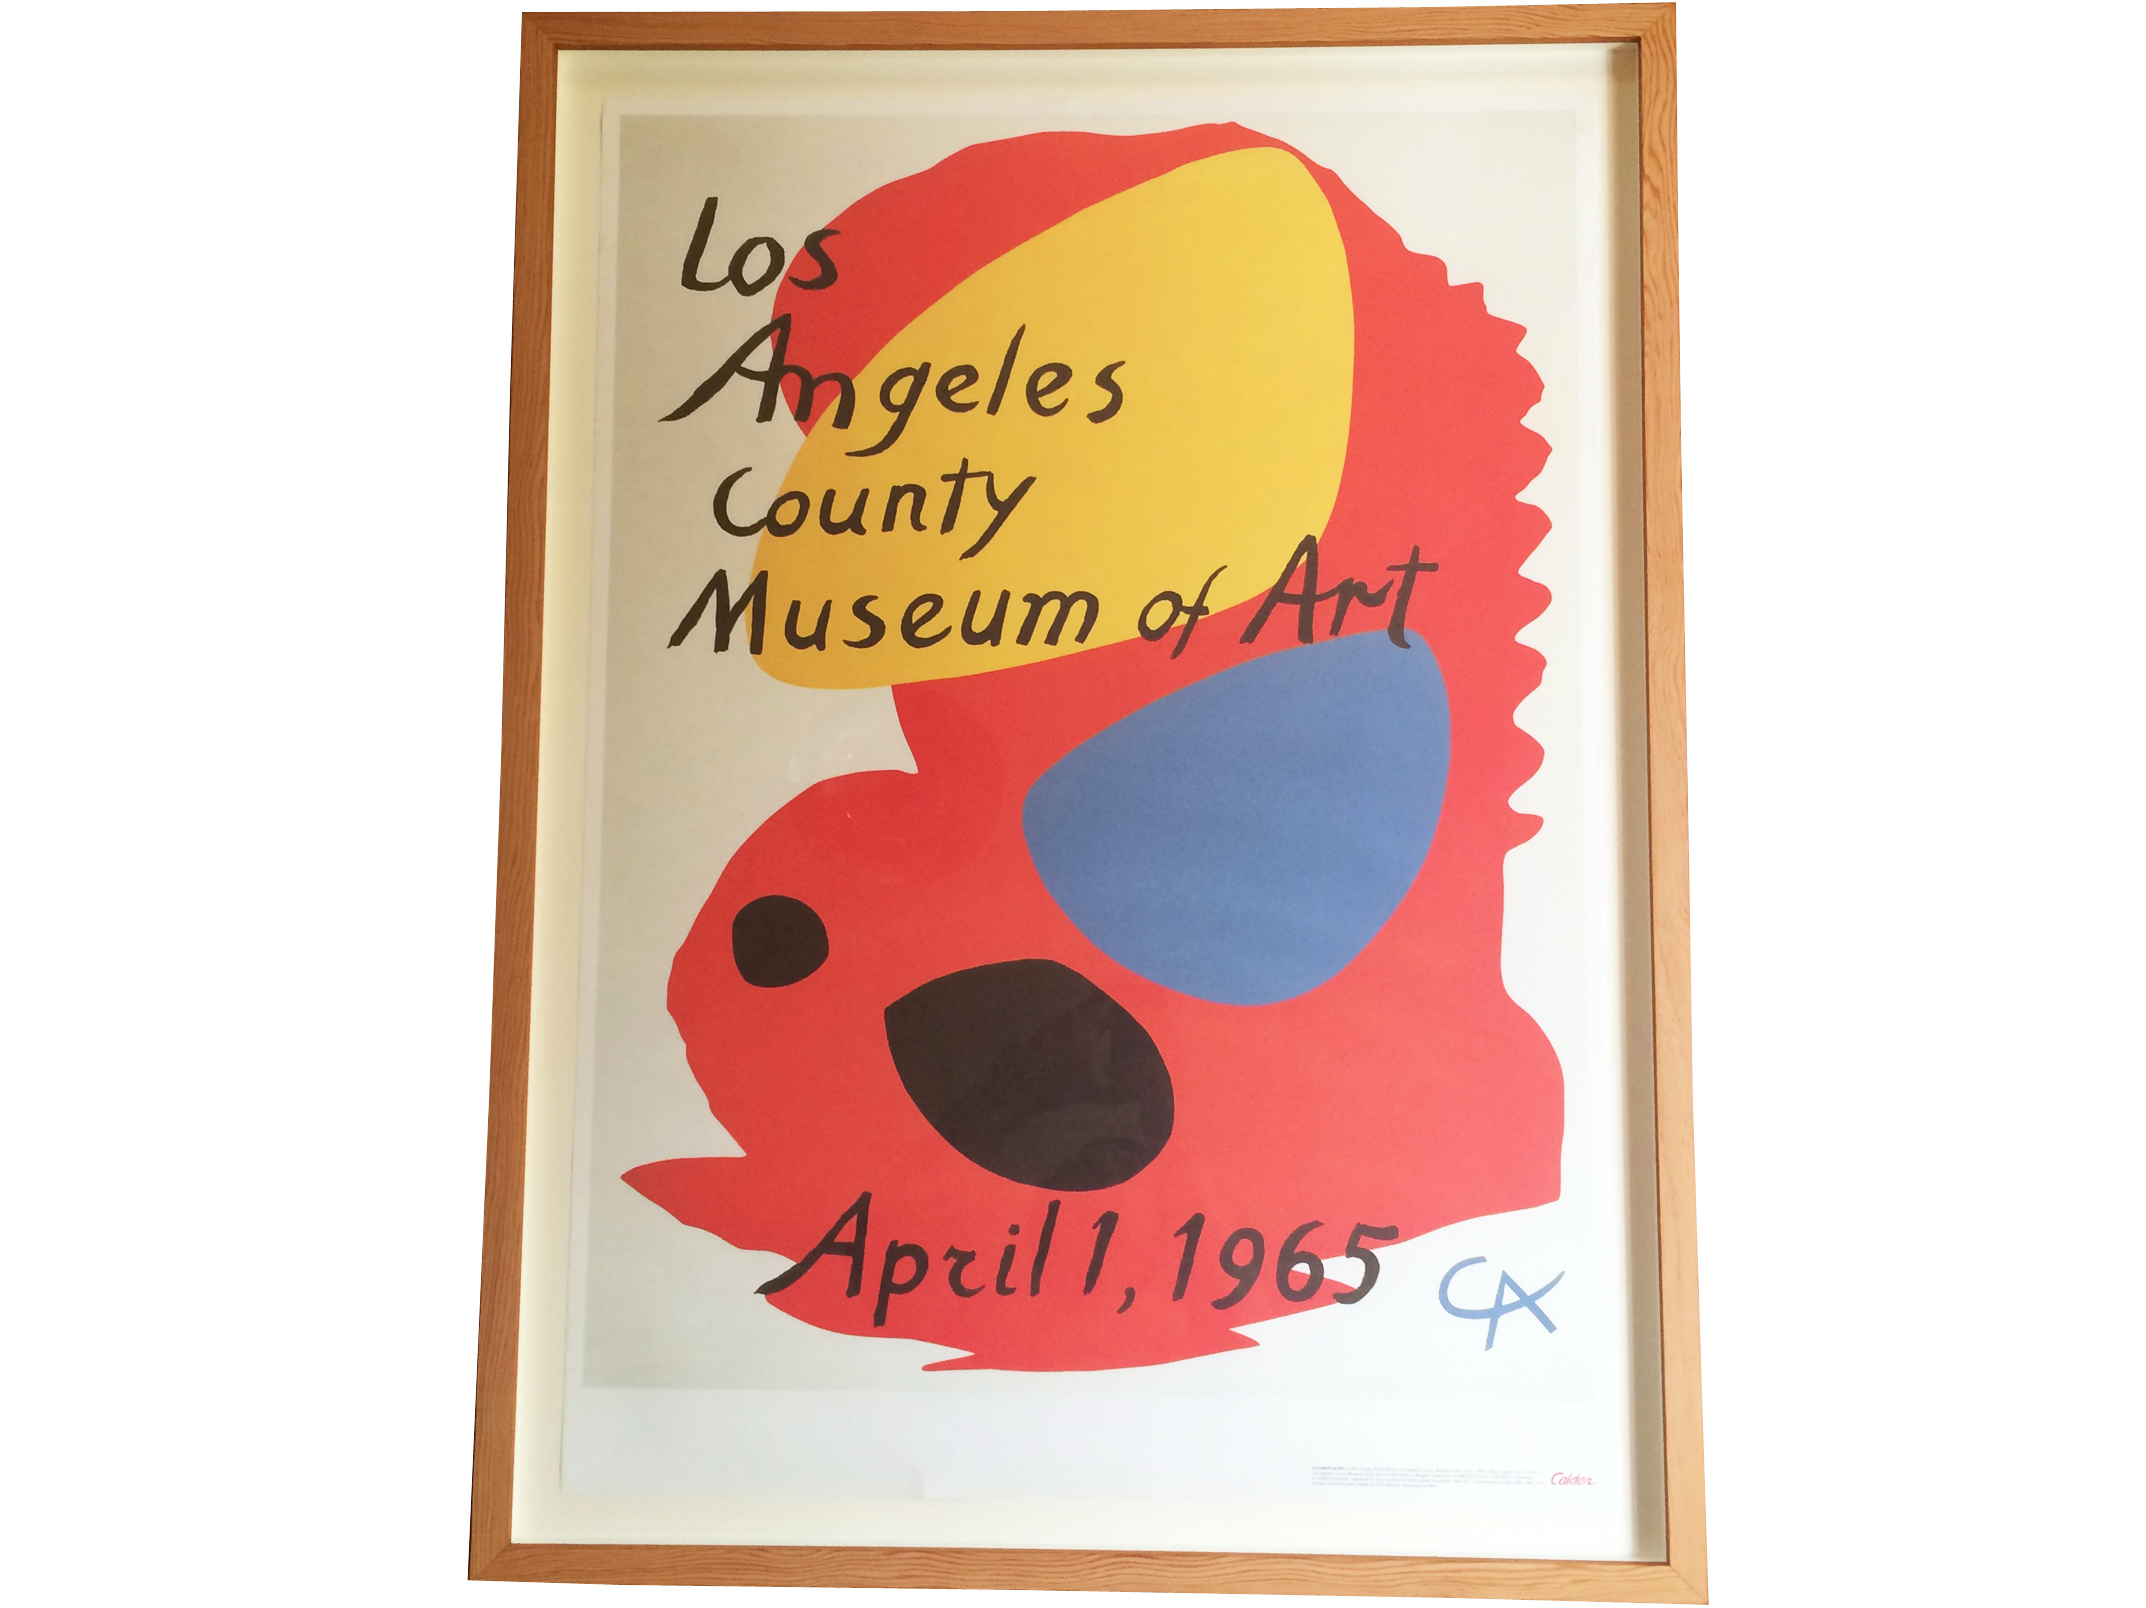 Proper custom framing for this great LACMA poster done in 2016 with reclaimed CVG doug fir helped warm up a beautiful home in LA.